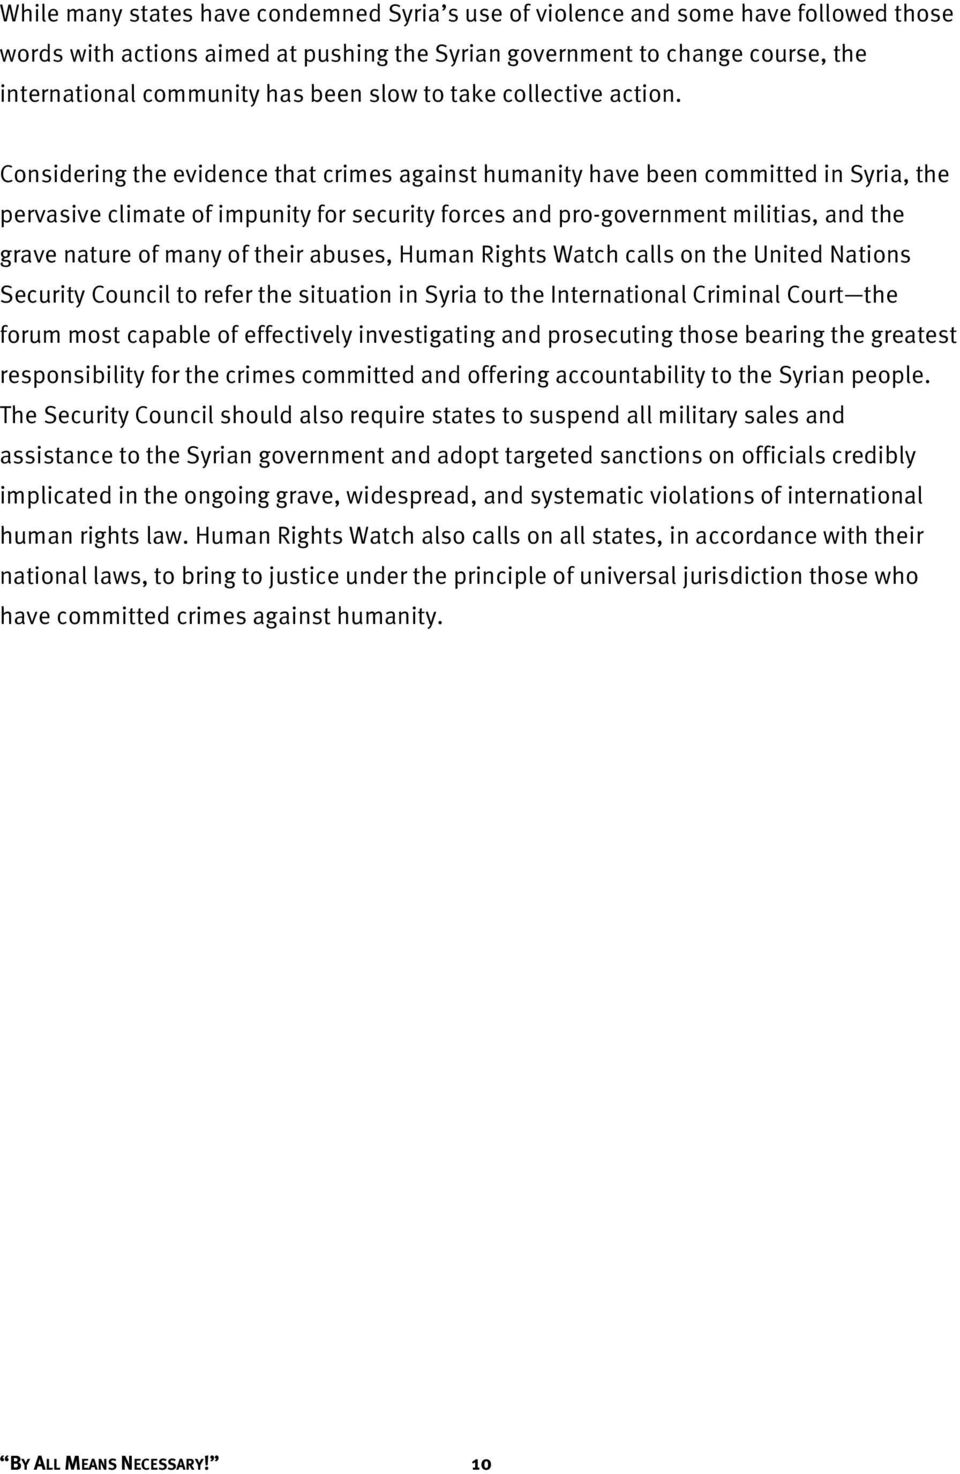 Considering the evidence that crimes against humanity have been committed in Syria, the pervasive climate of impunity for security forces and pro-government militias, and the grave nature of many of